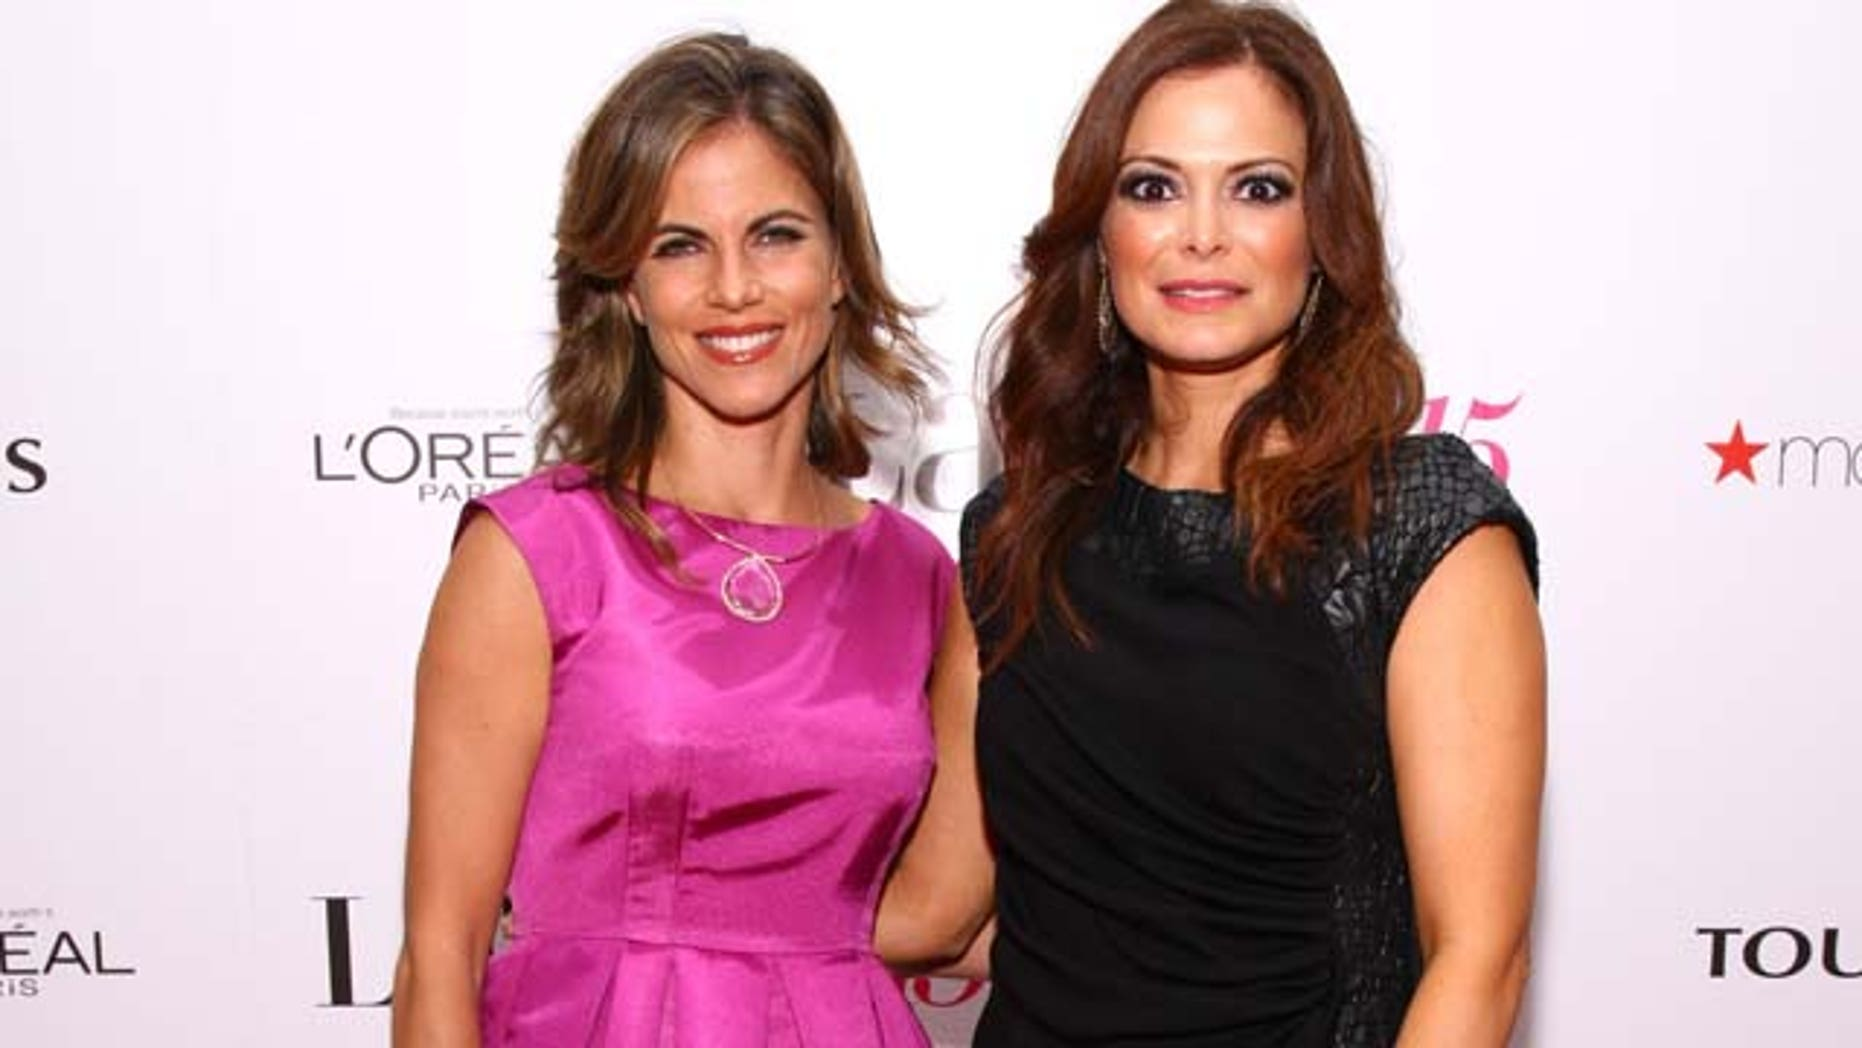 Sept. 26, 2011: TV personality Natalie Morales and Co-President of Latina Magazine Galina Espinoza attend Latina Magazine's 15th anniversary celebration at Espace in New York City.